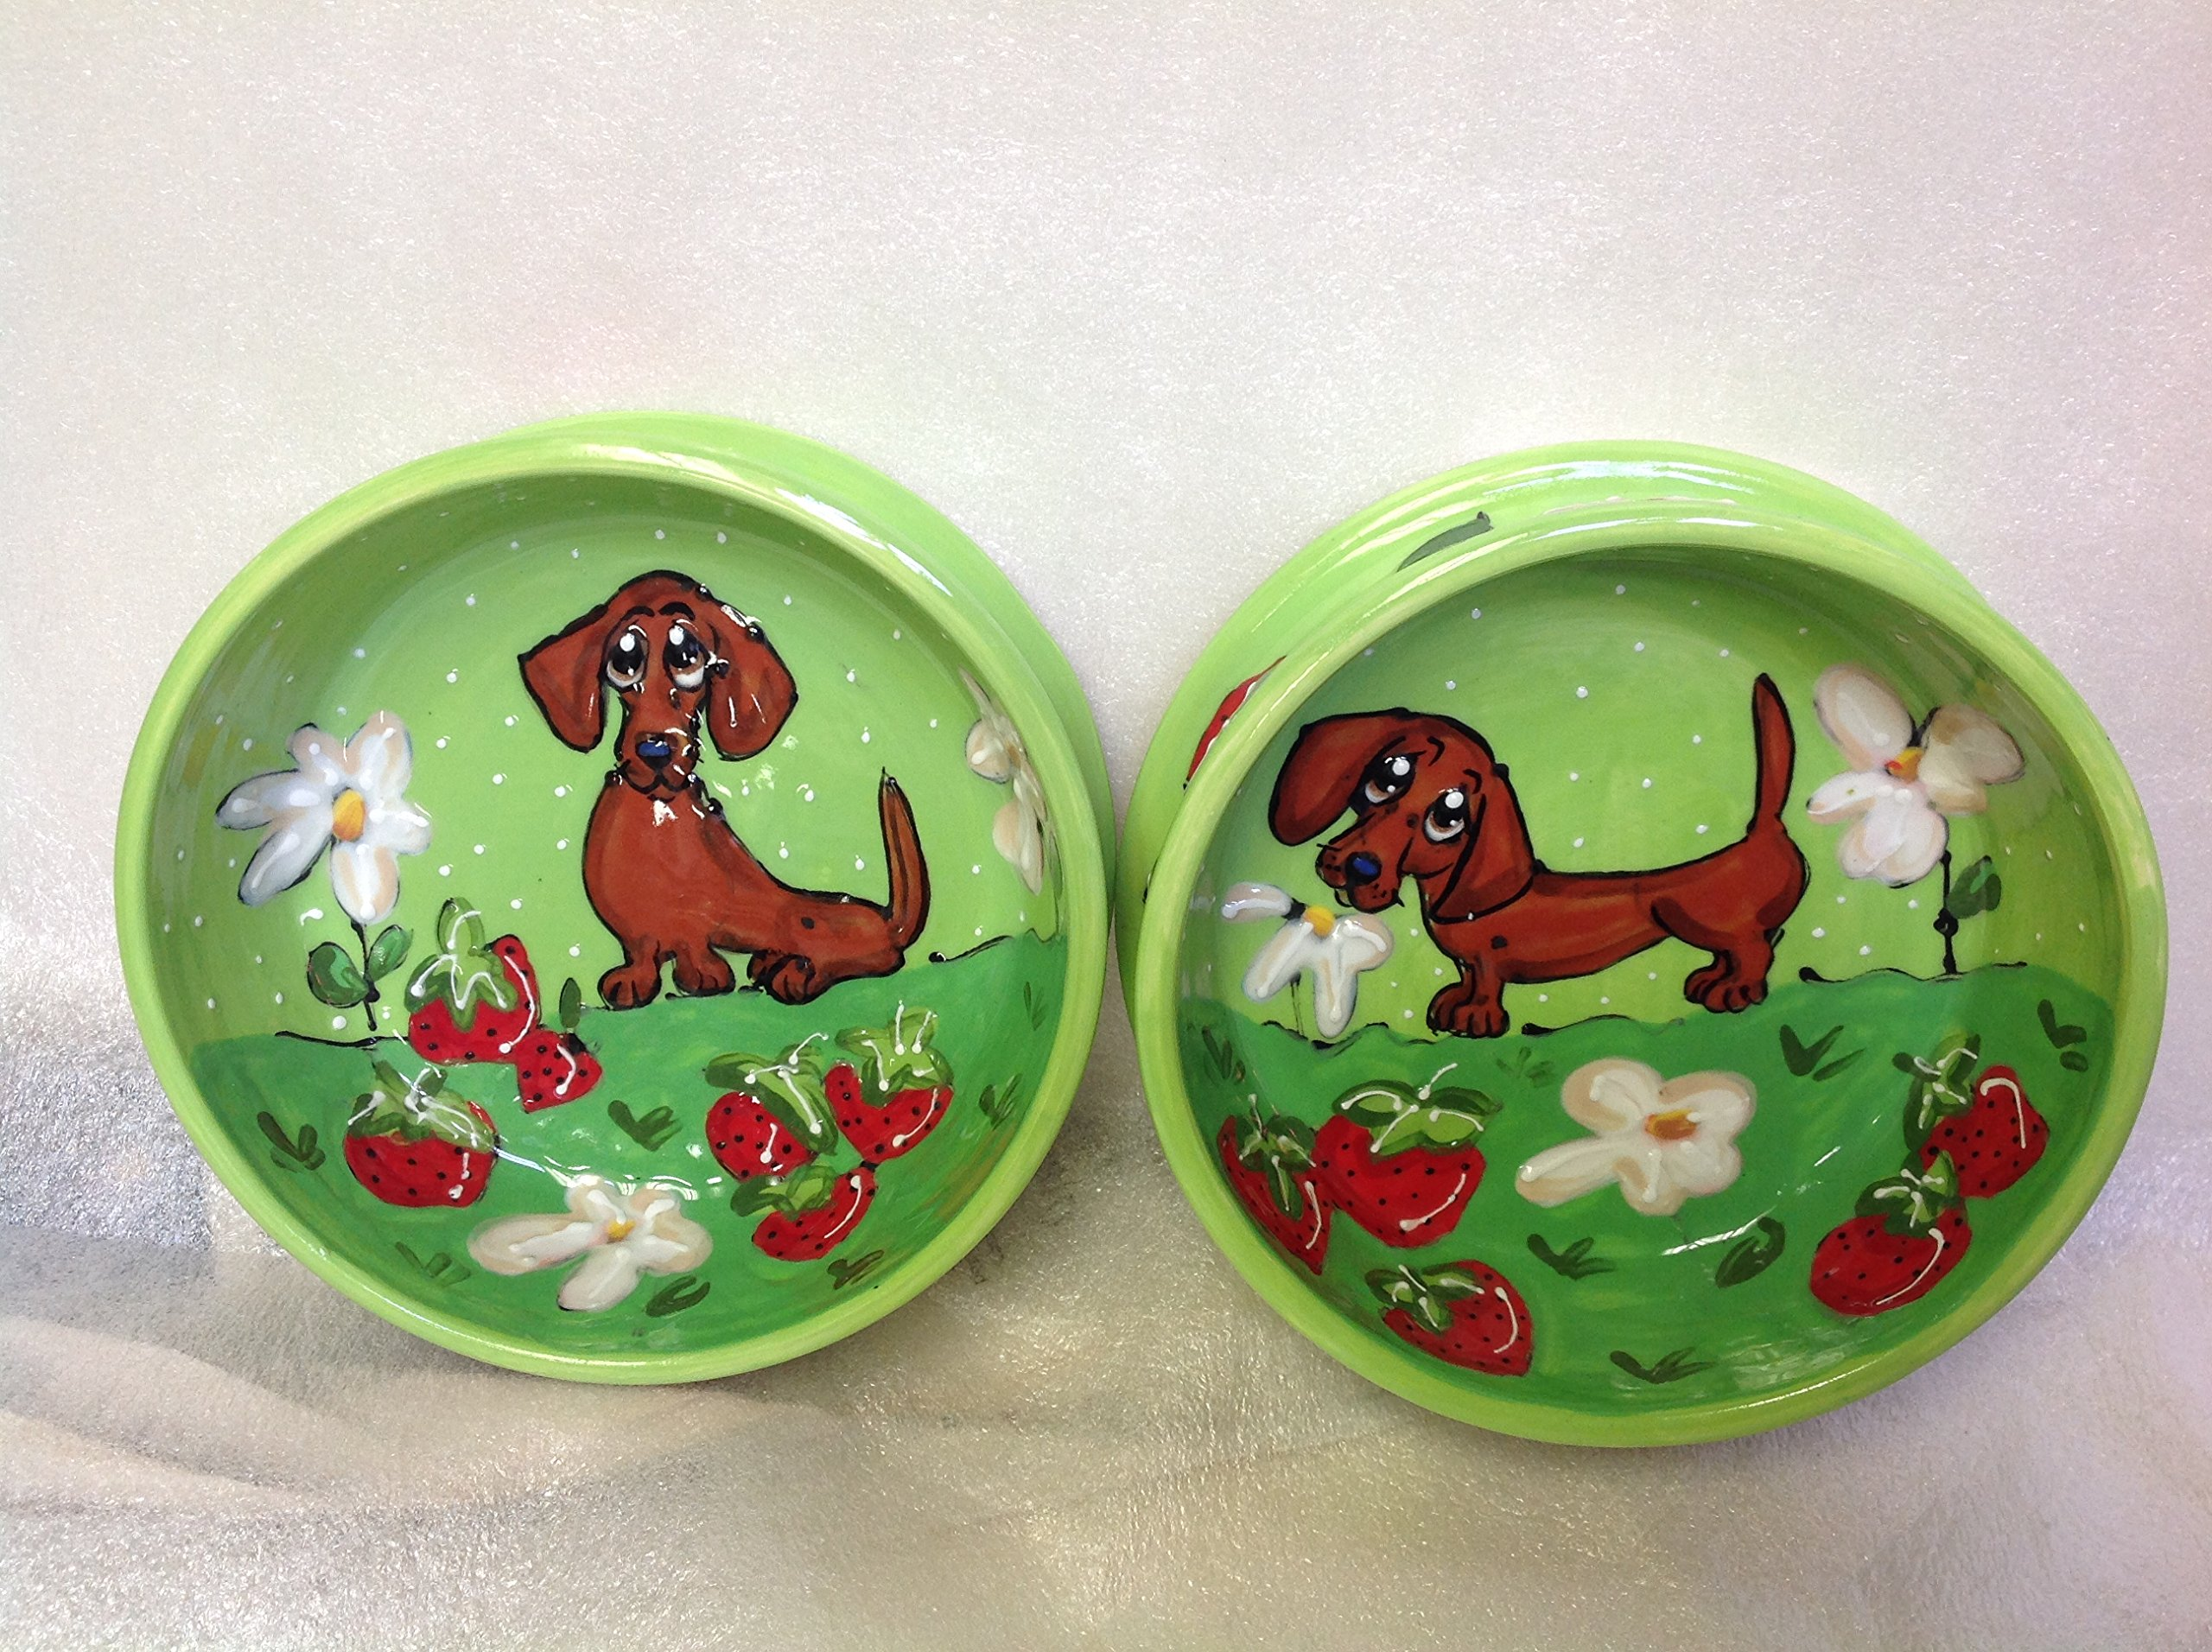 Dachshund 8'' and 6'' Pet Bowls for Food and Water. Personalized at no Charge. Signed by Artist, Debby Carman.